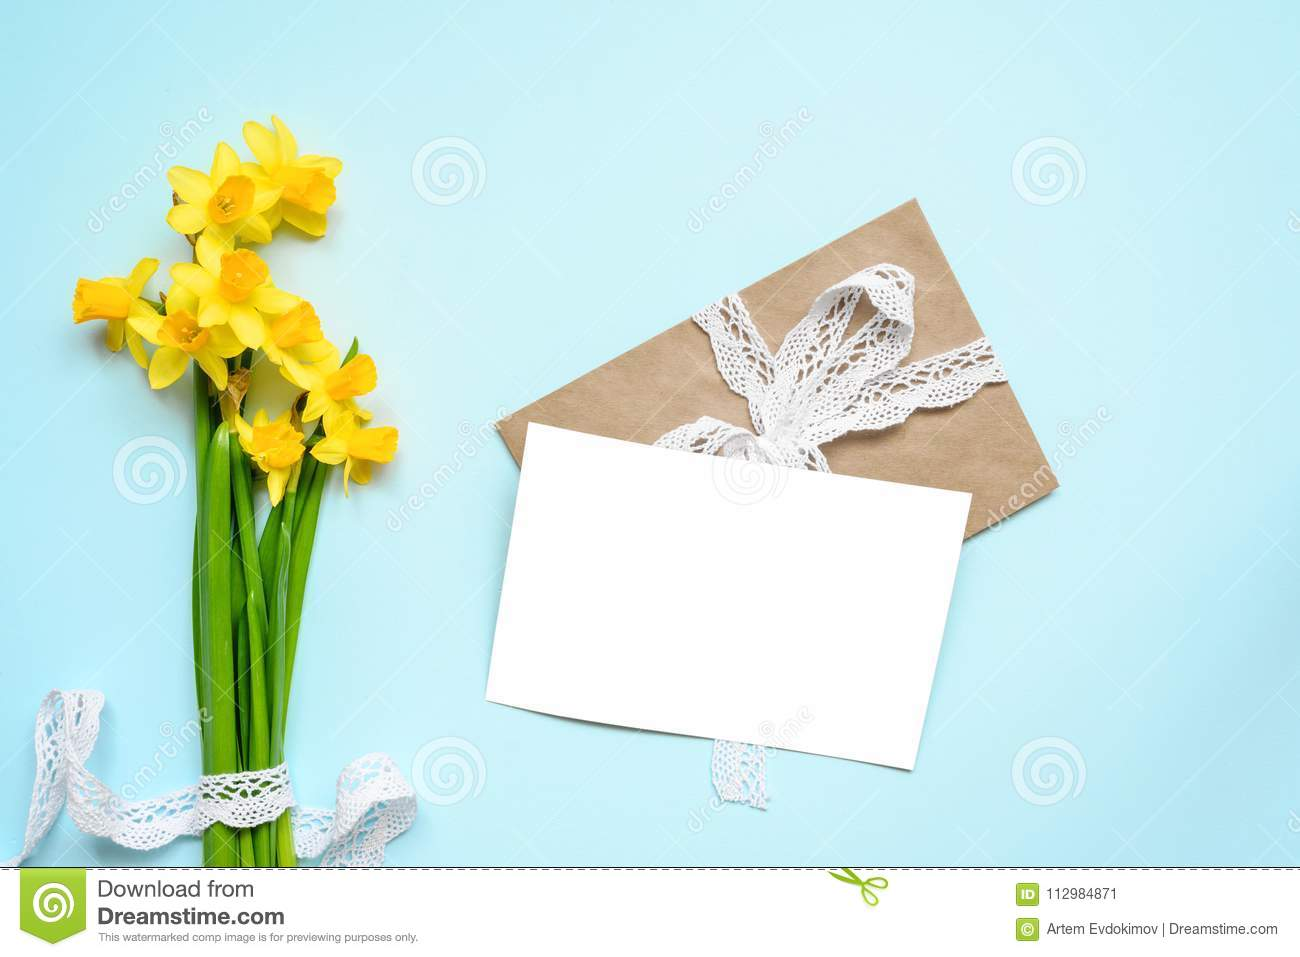 Blank white greeting card with spring yellow narcissus flowers bouquet over blue background. mock up